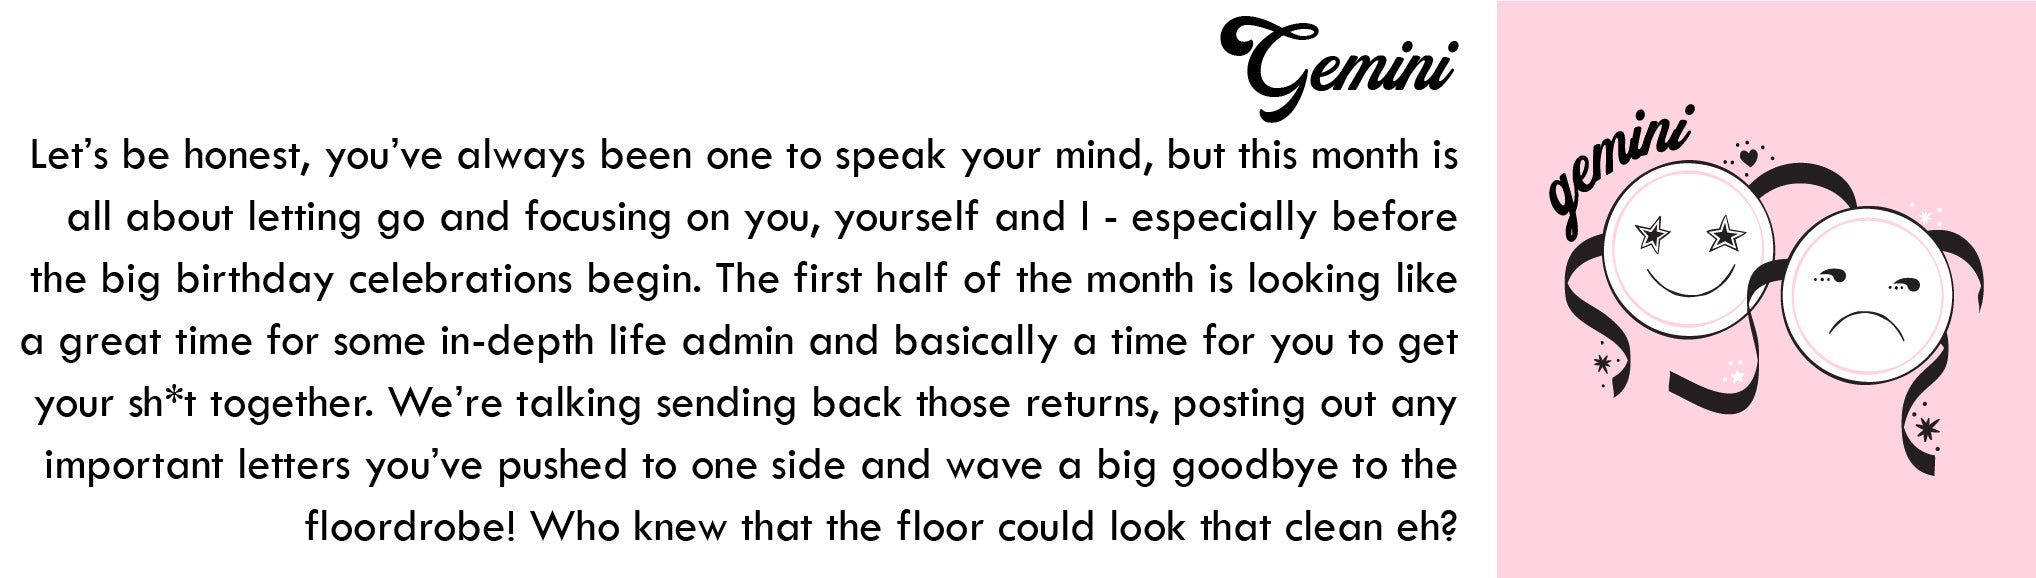 Gemini April Horoscope | Blog | Skinnydip London